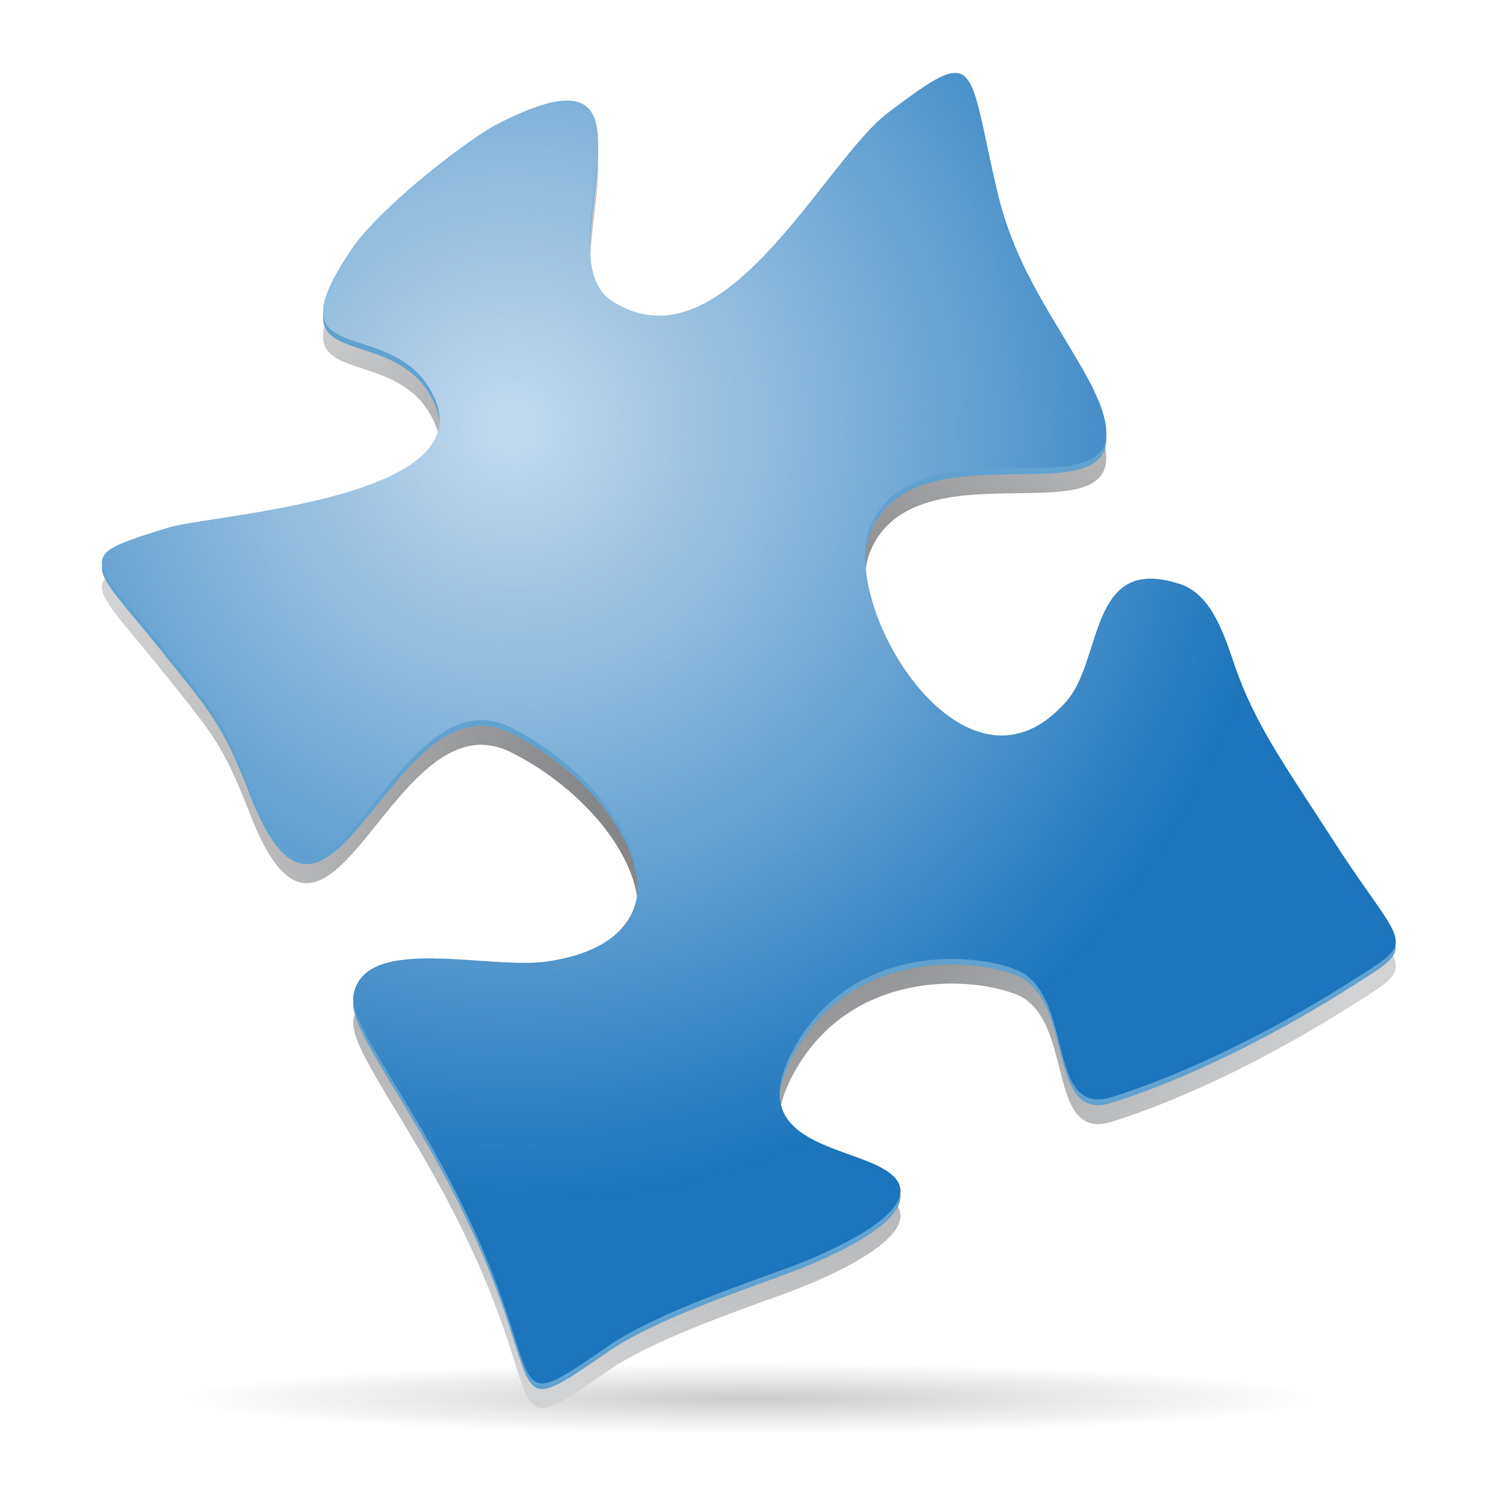 Free PowerPoint Puzzle Cliparts, Download Free Clip Art.